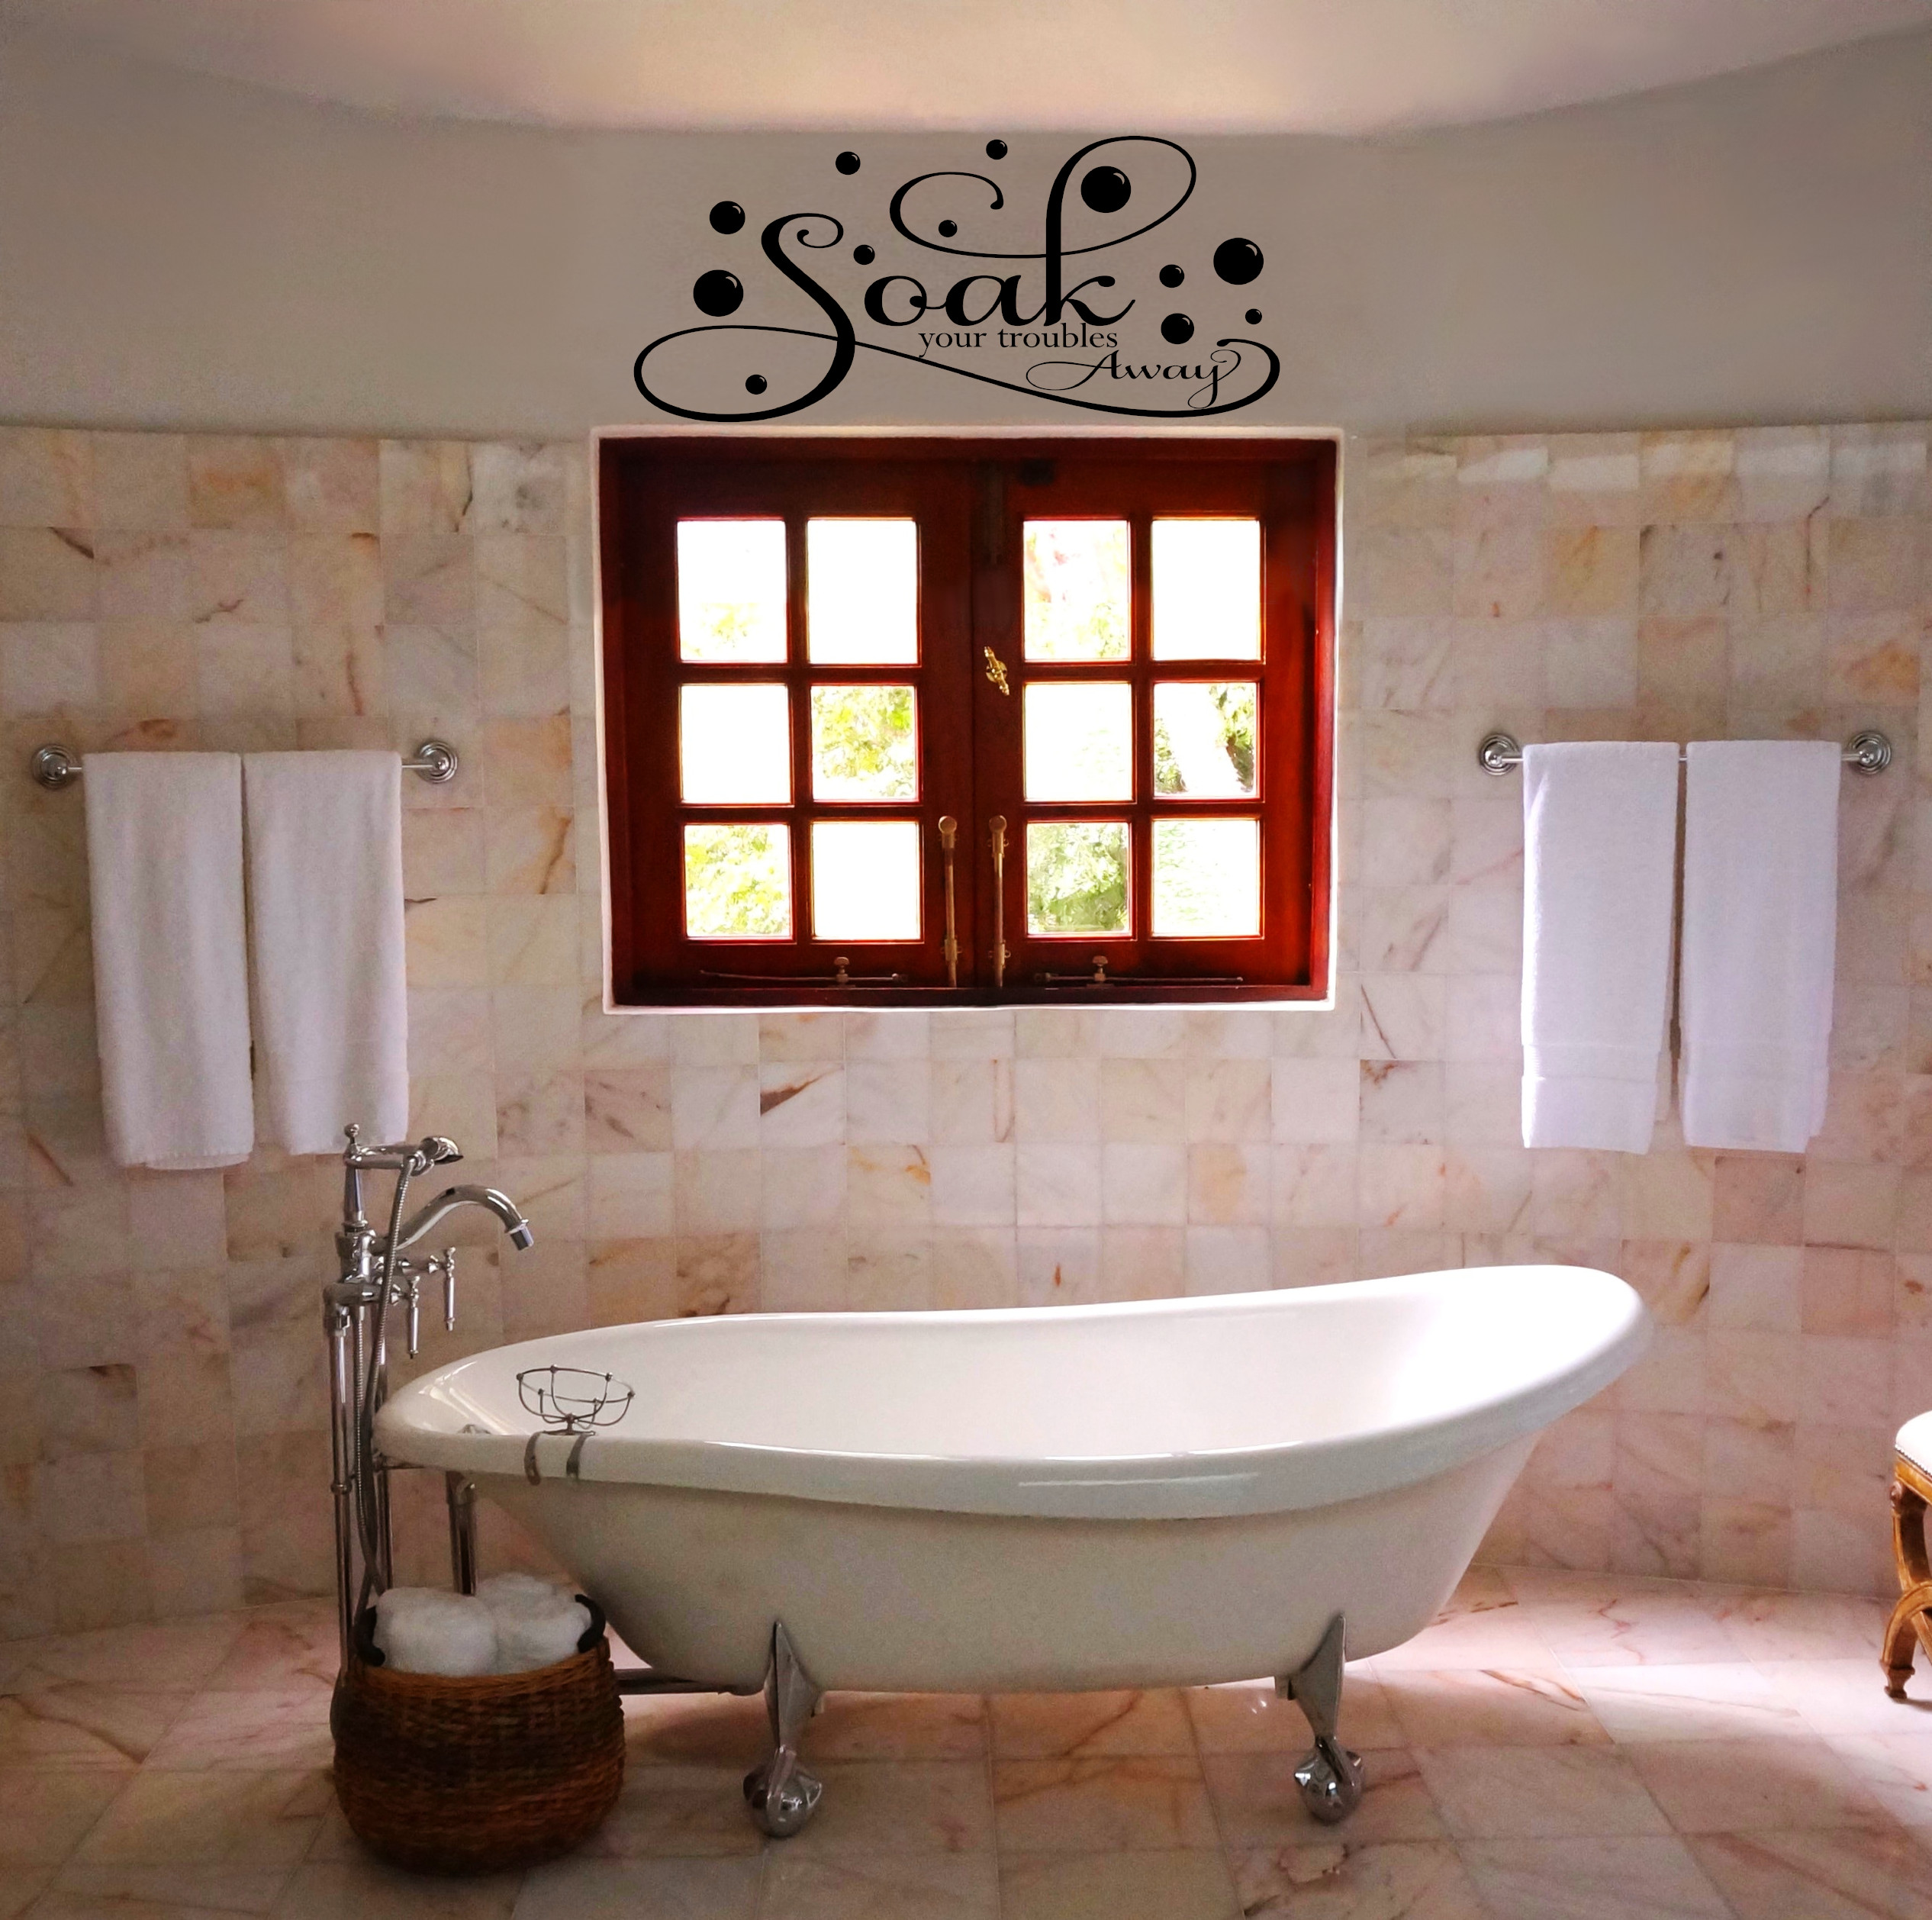 Soak your troubles away Relaxation Bathroom Wall Decal Wall Quote Vinyl Wall Lettering -B105•Vinyl Wall Expressions